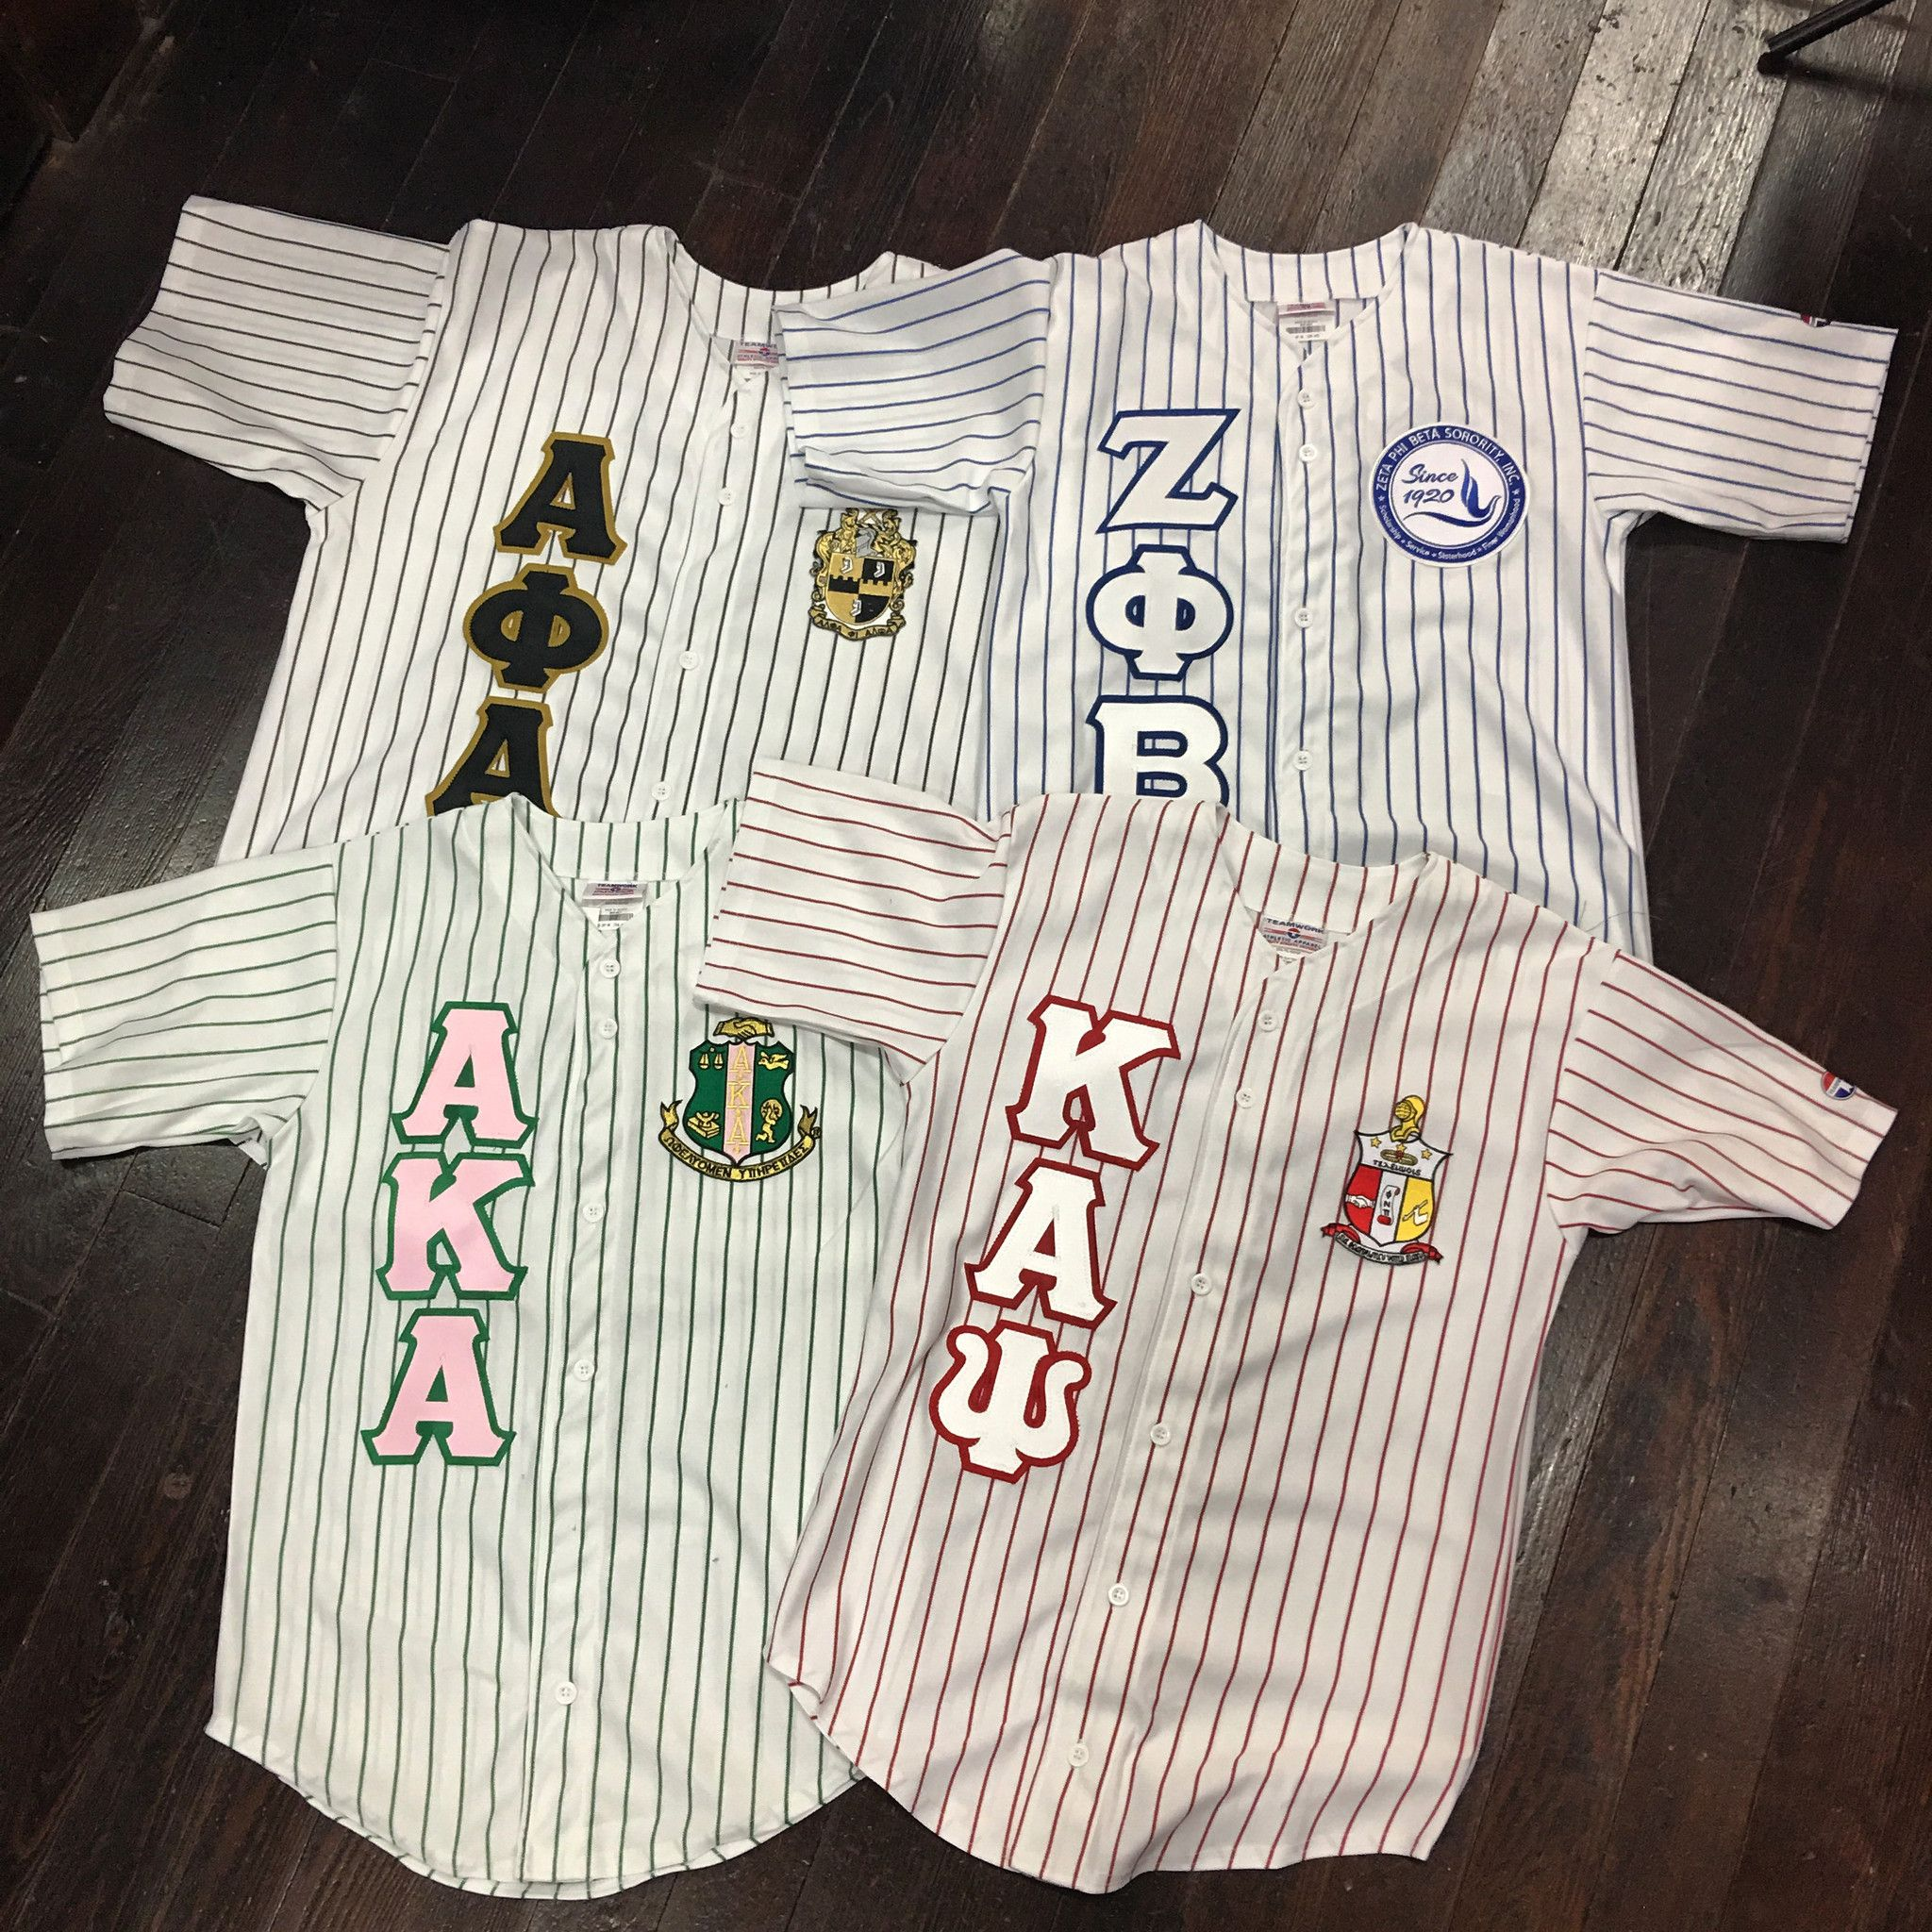 Sewn Letter Pinstripe Baseball Jersey With Images Sorority And